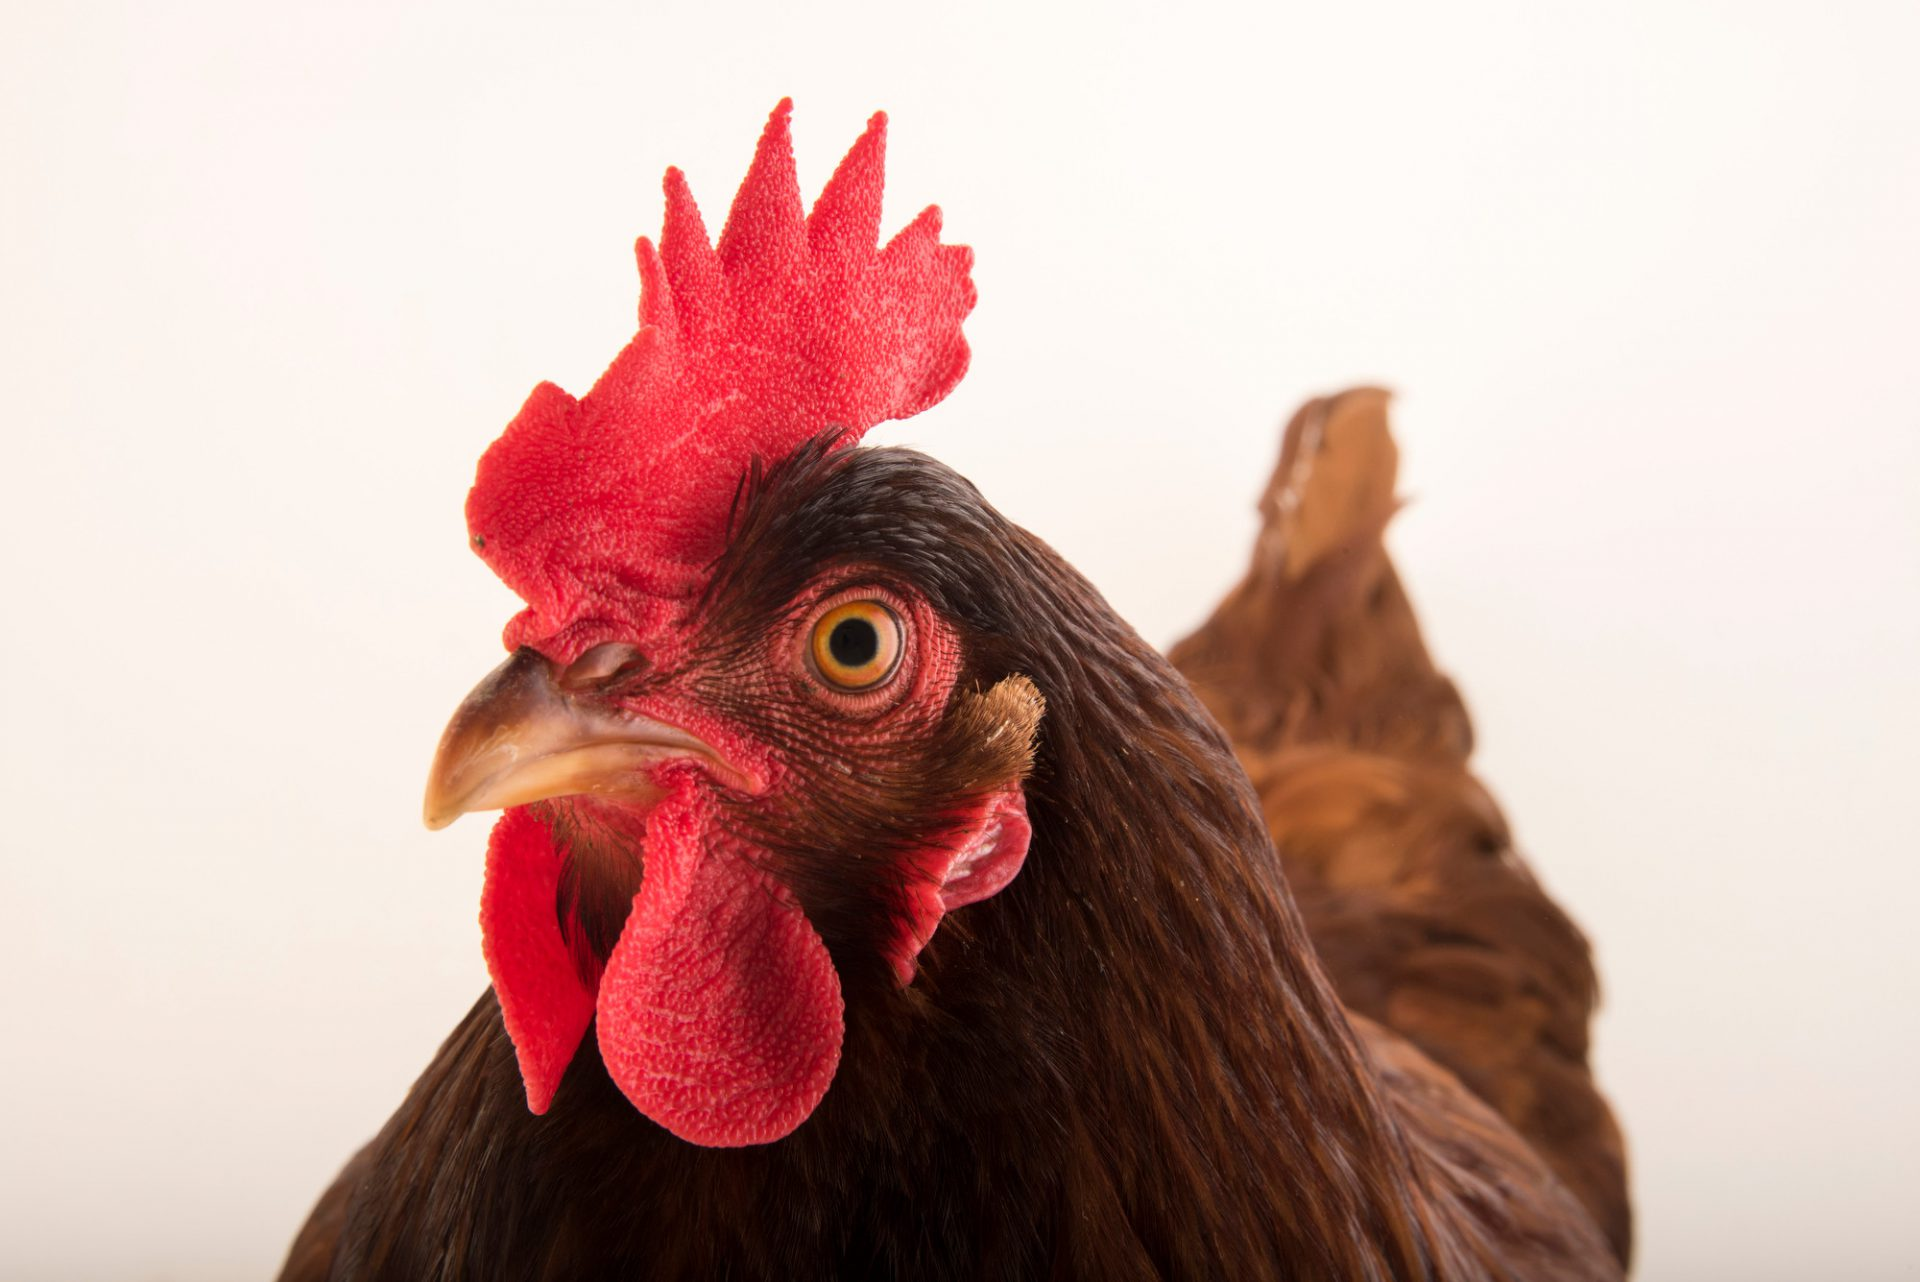 Photo: A Rhode Island red domestic chicken (Gallus gallus domesticus) in Lincoln, Nebraska.